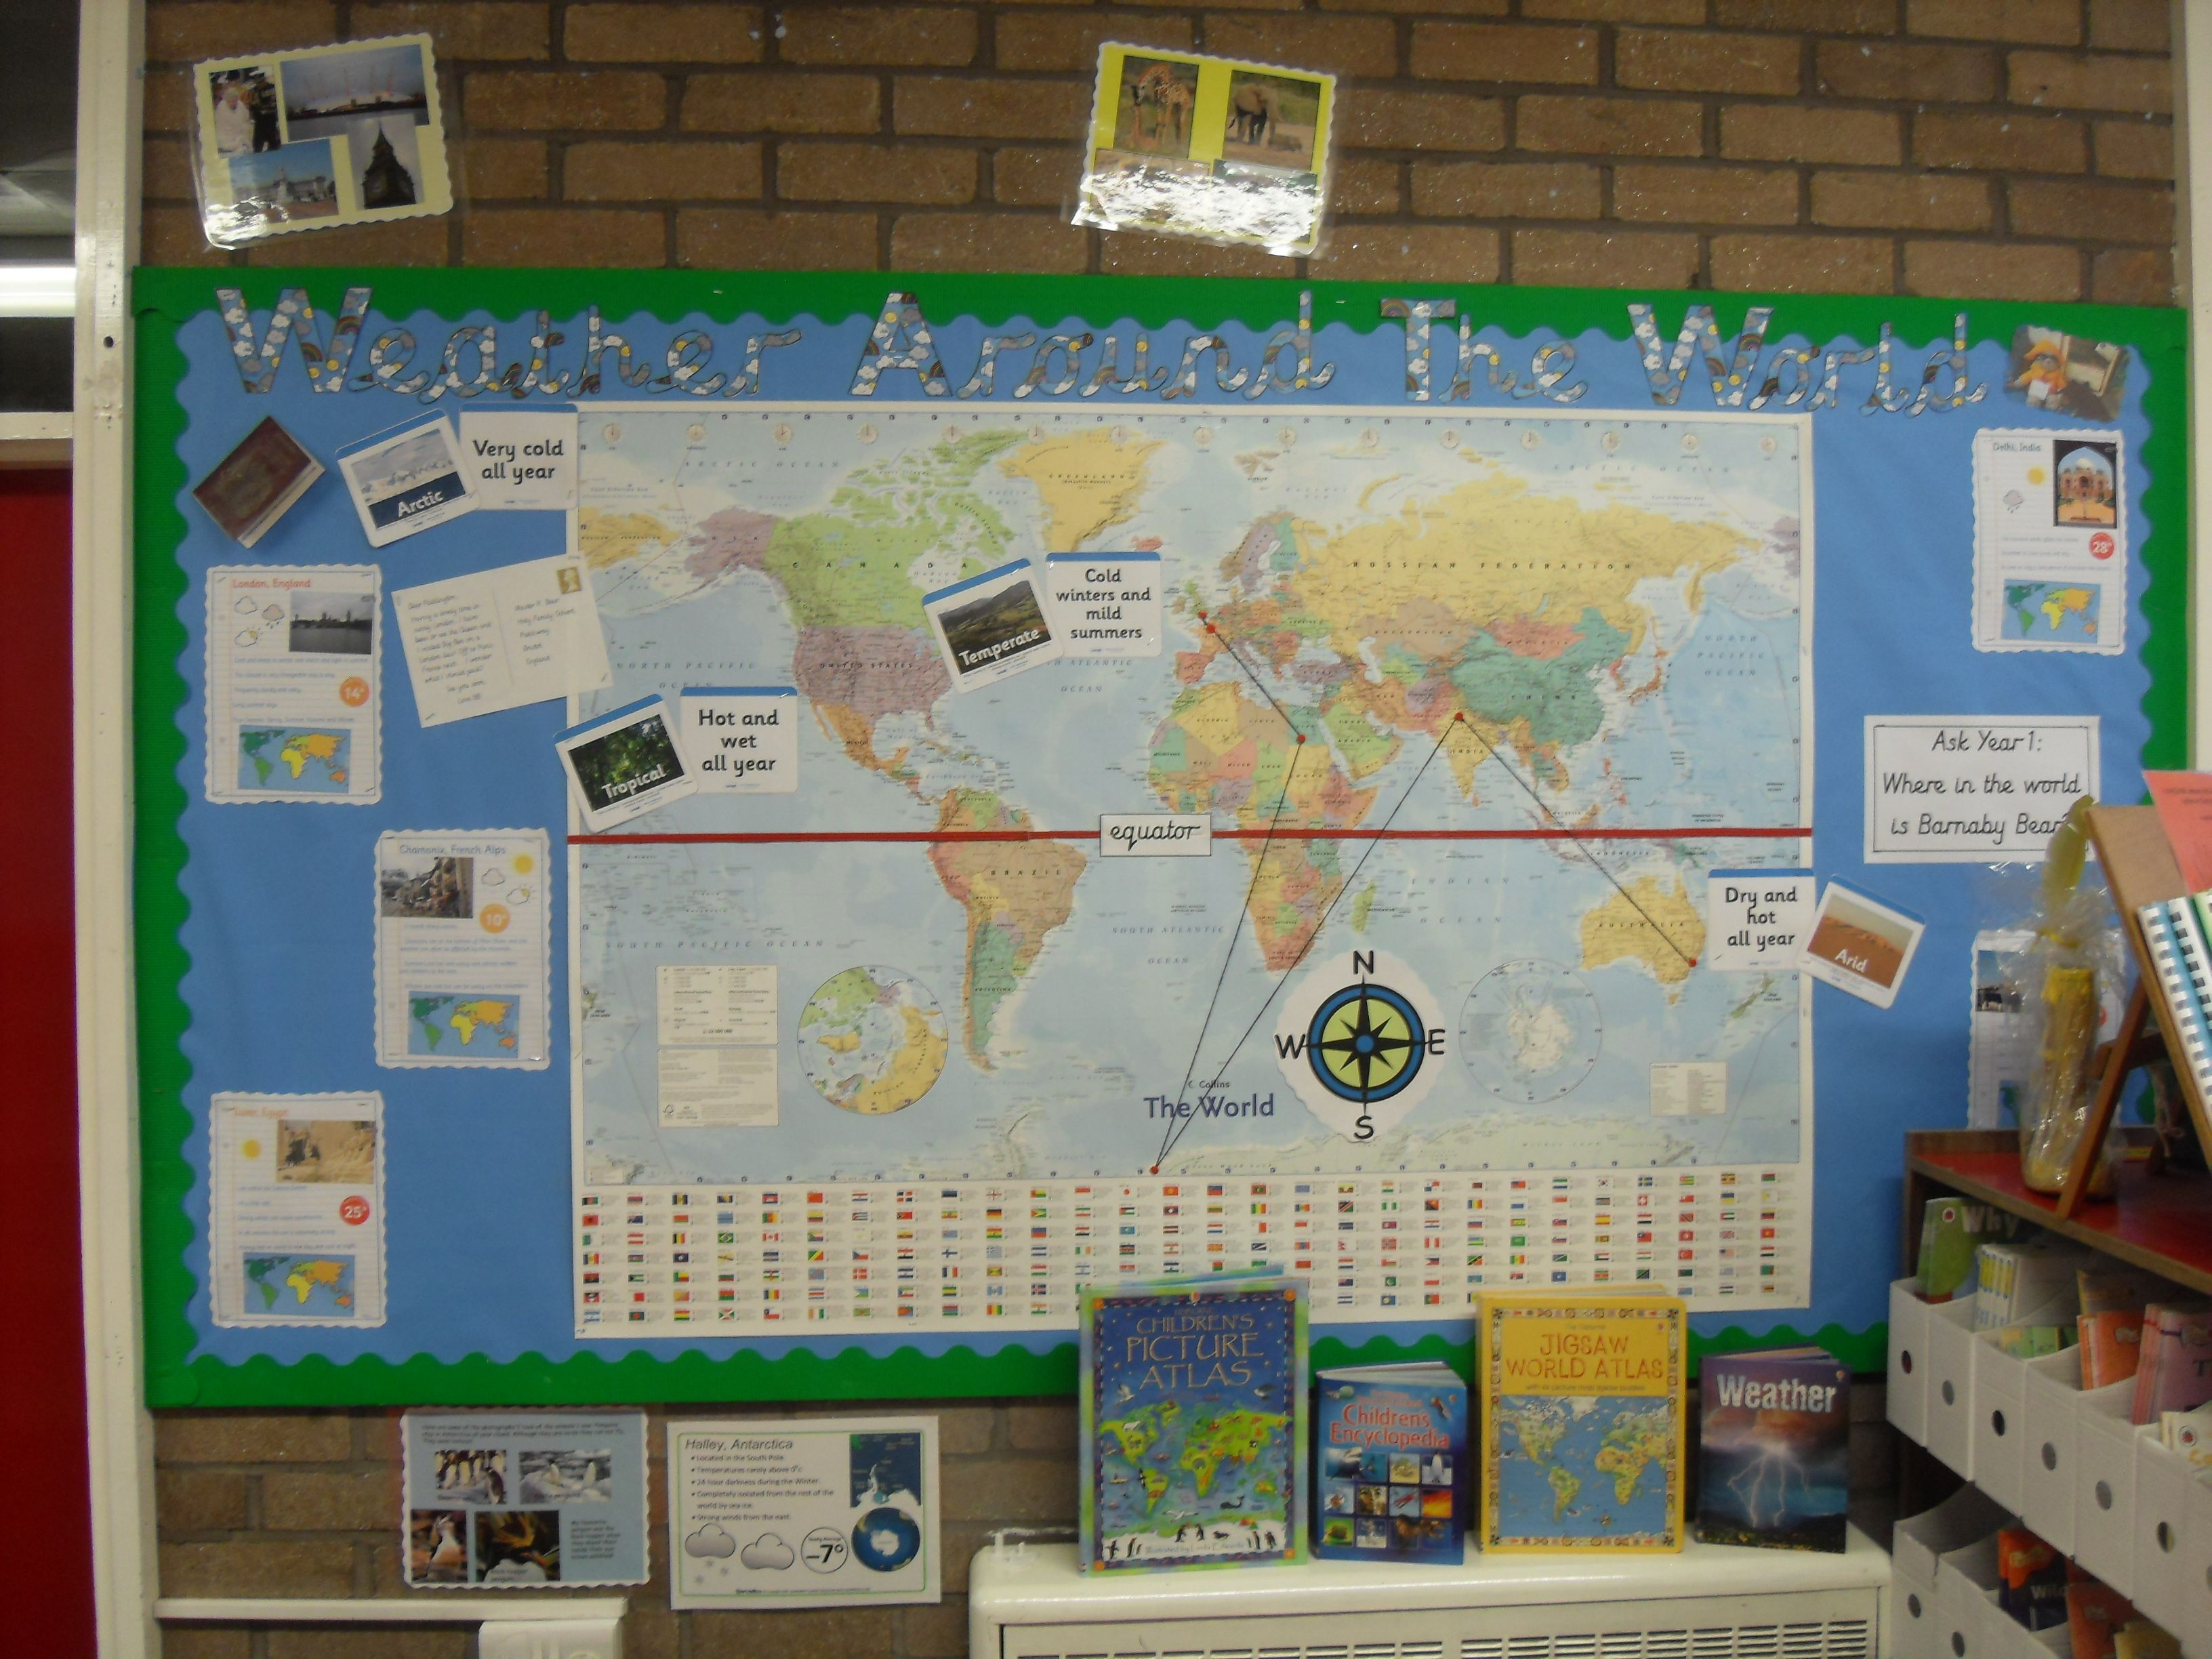 Map world ks1 picture ideas references map world ks1 weather around the world barnaby bear ks geography topic world climates gumiabroncs Image collections